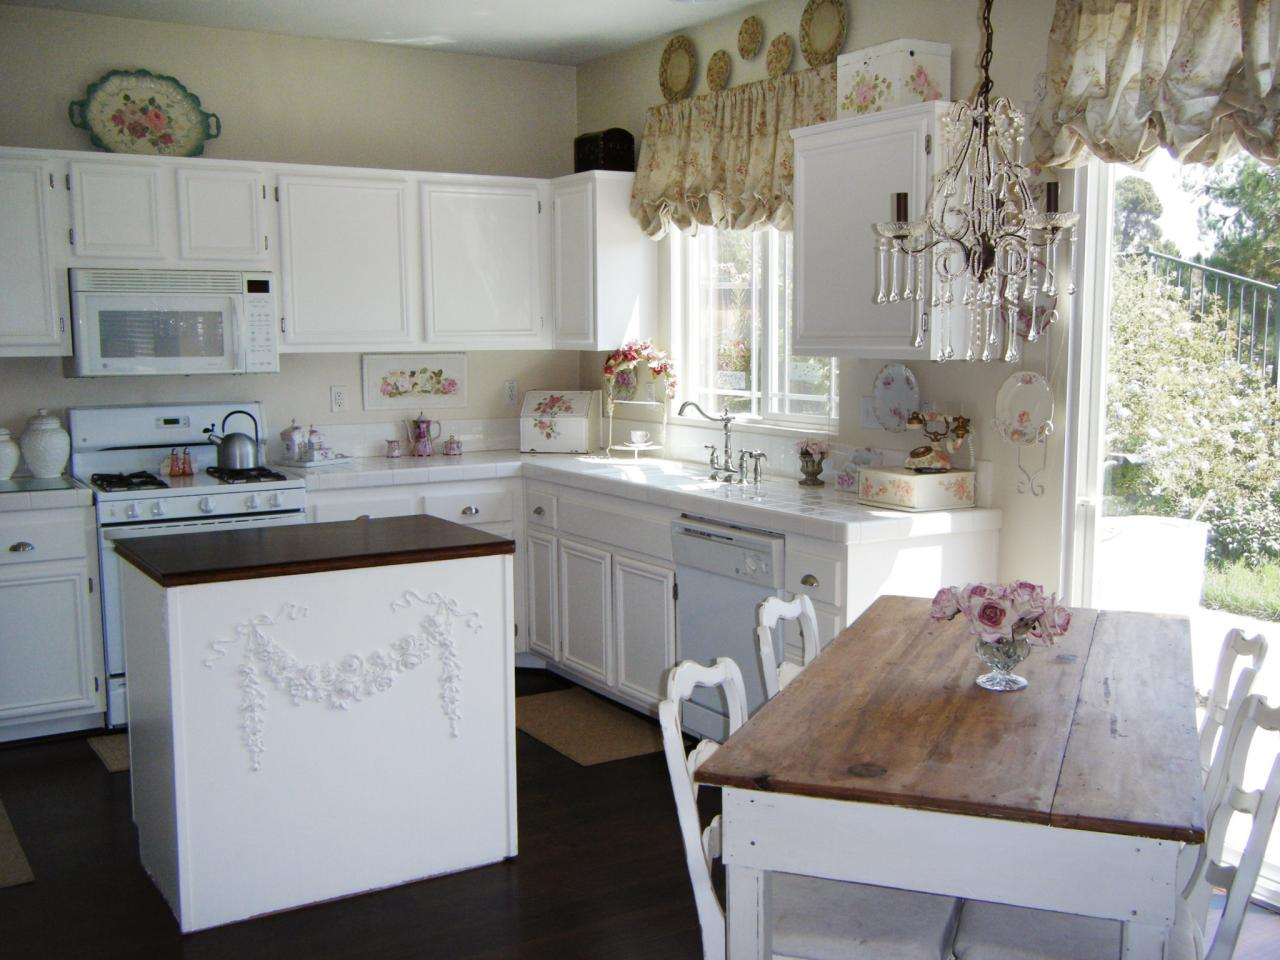 Country kitchen design pictures ideas tips from hgtv for 5 x 20 kitchen ideas